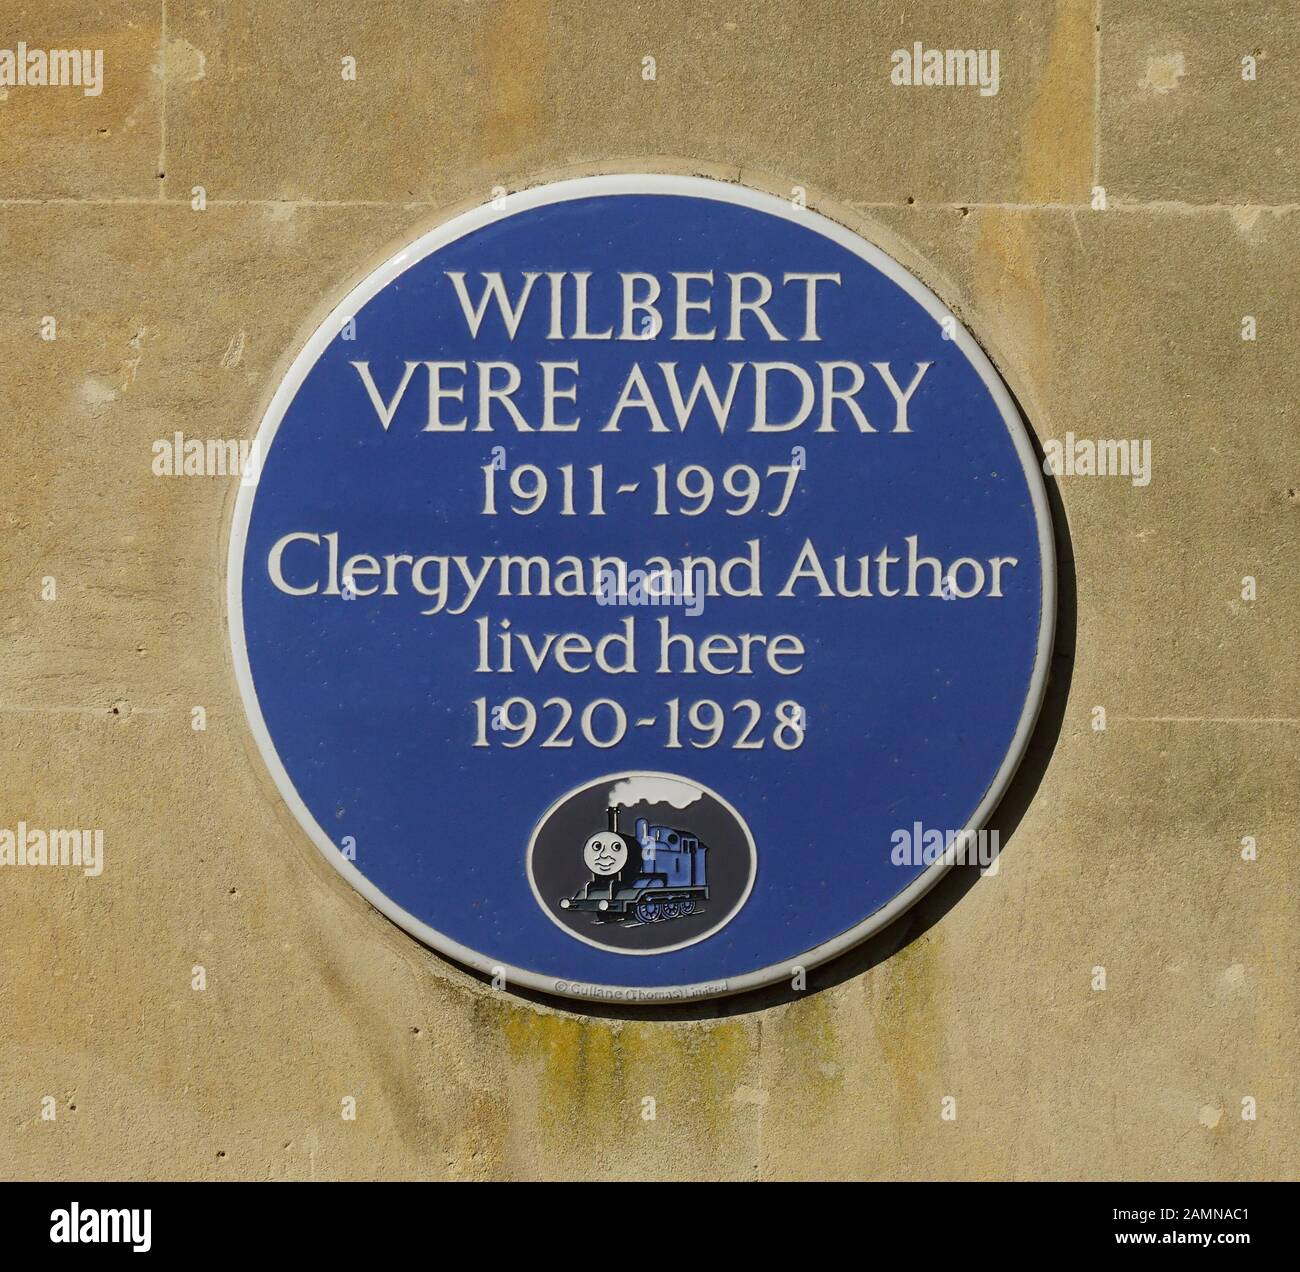 A blue plaque for Rev W V Awdry (creator of the Thomas the Tank Engine books) on Lorne House, his former home in Box, Wiltshire. Stock Photo